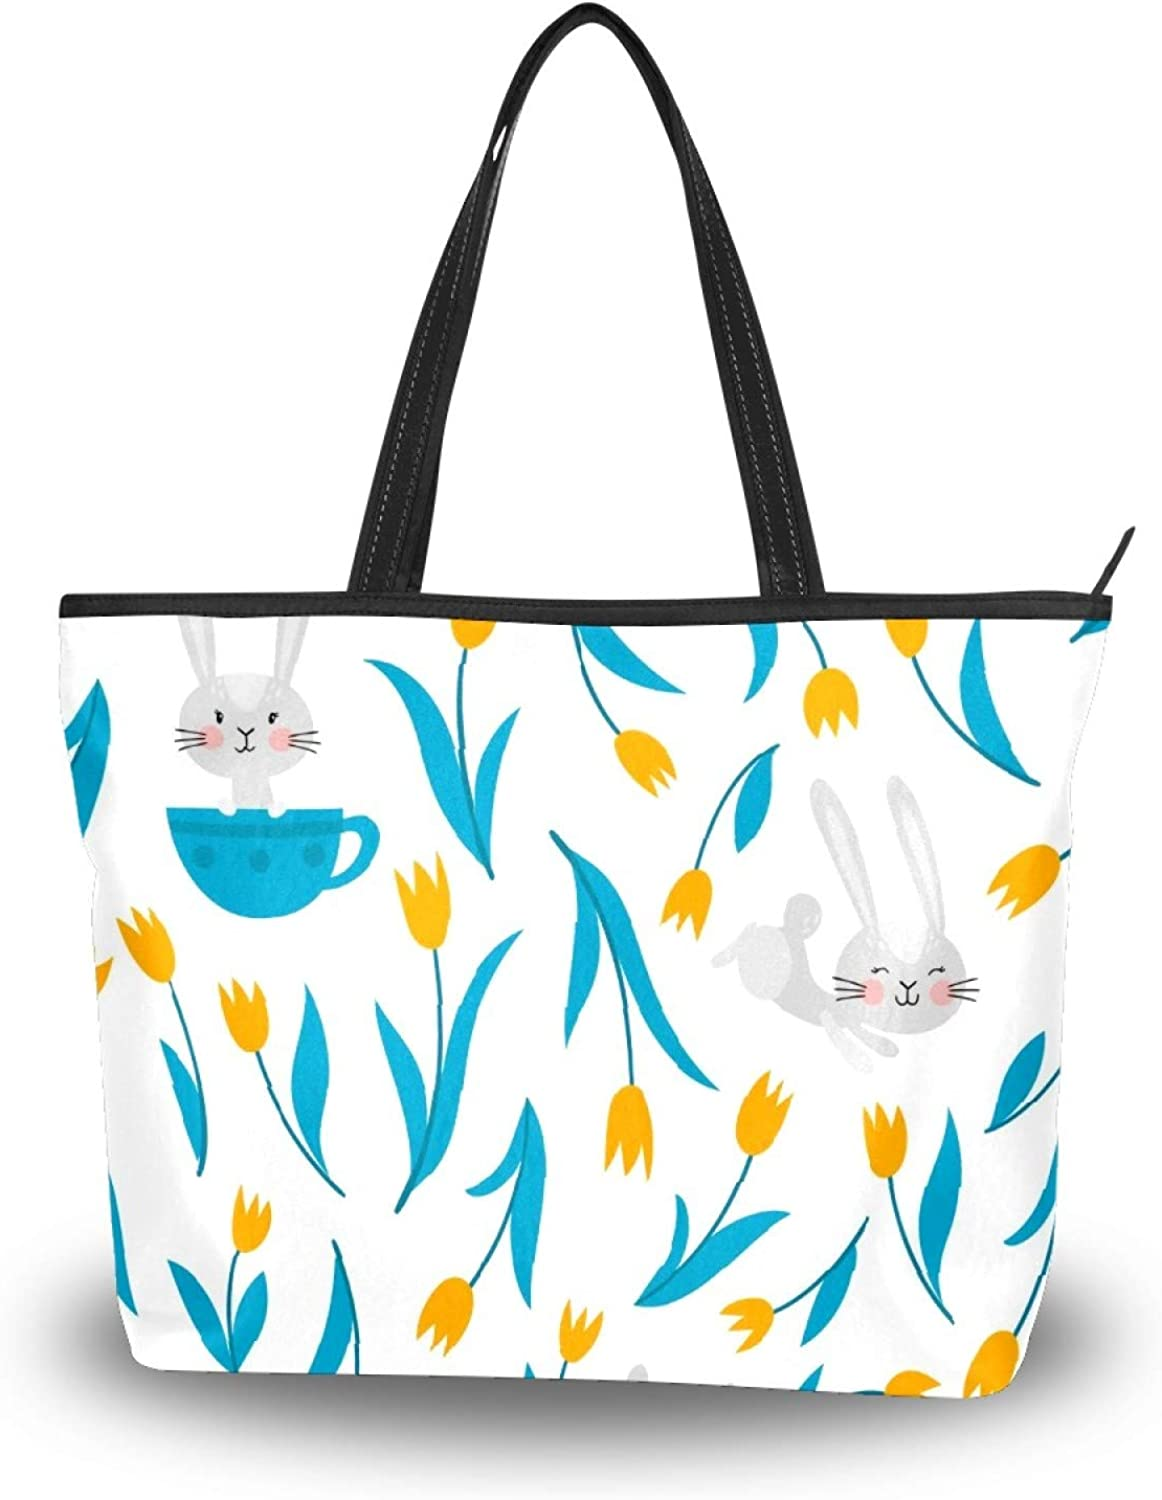 50 Cent Bombing new work Rabbits Tulips Tote San Jose Mall Polyester Bag Lightweight Sho Women